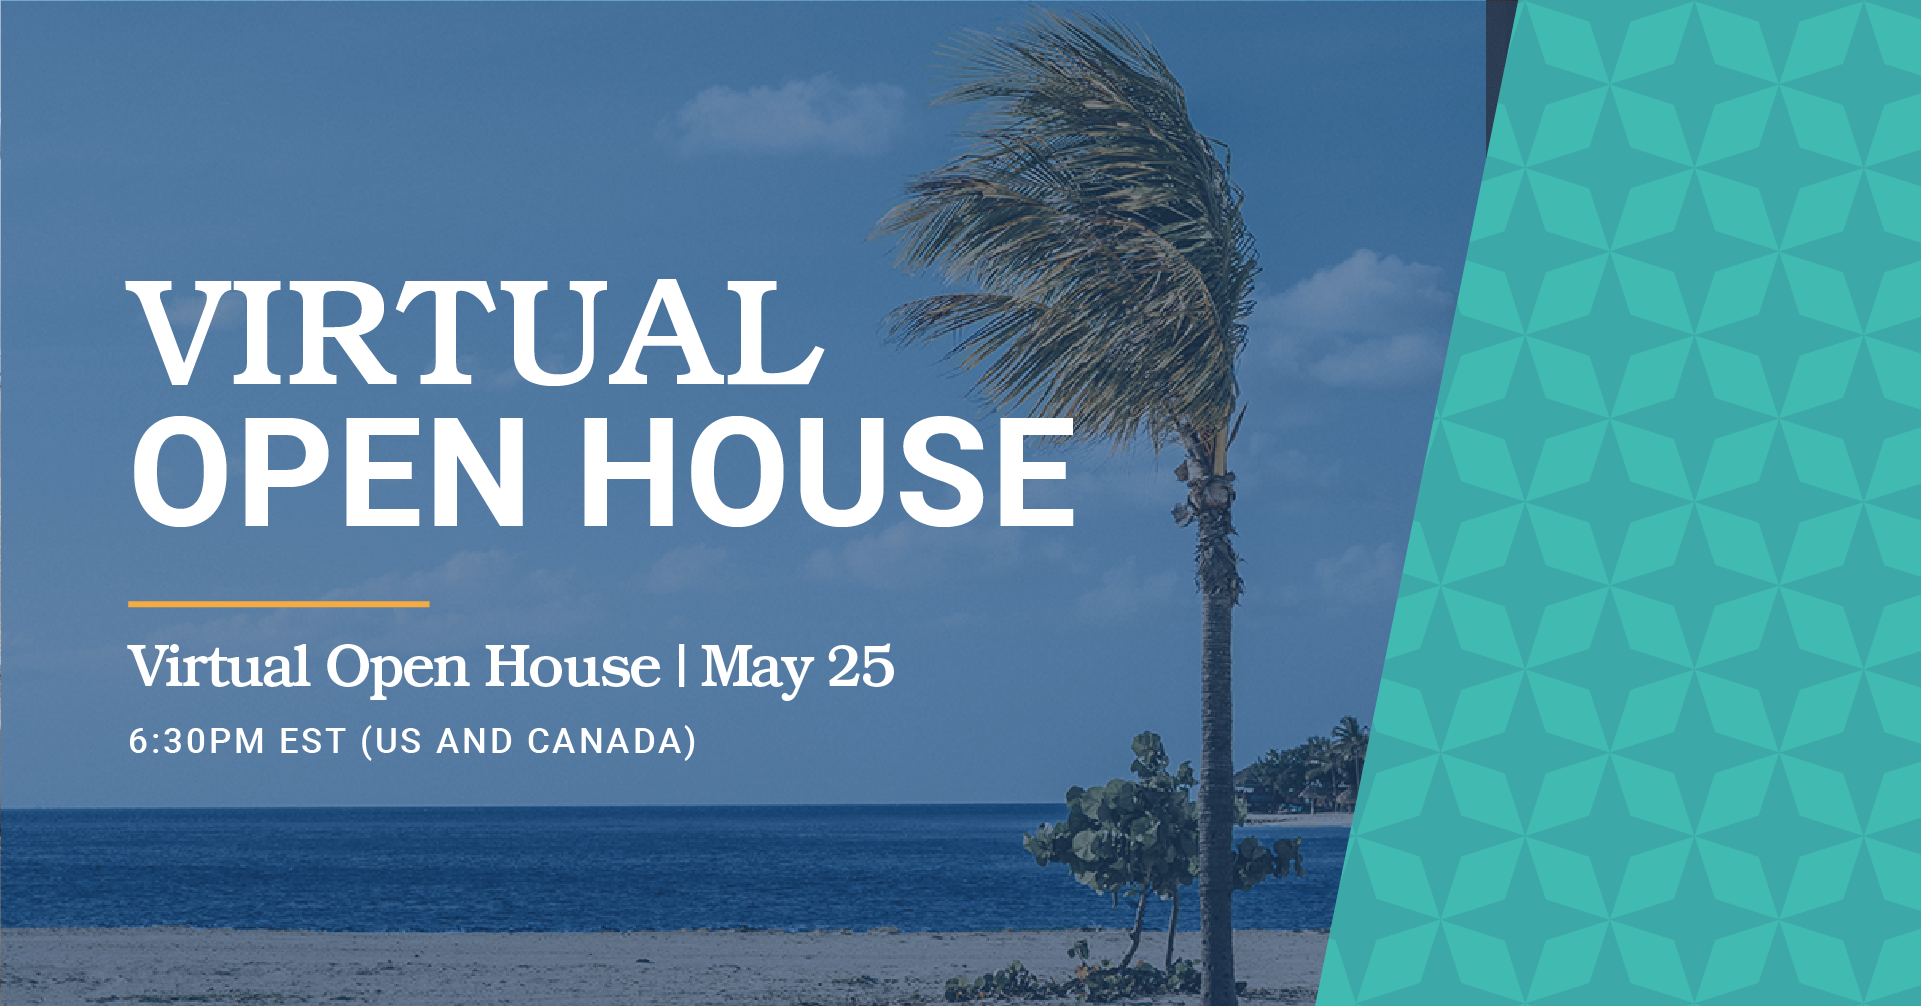 Virtual Open House - Zoom - May 25 - 6:30pm EST